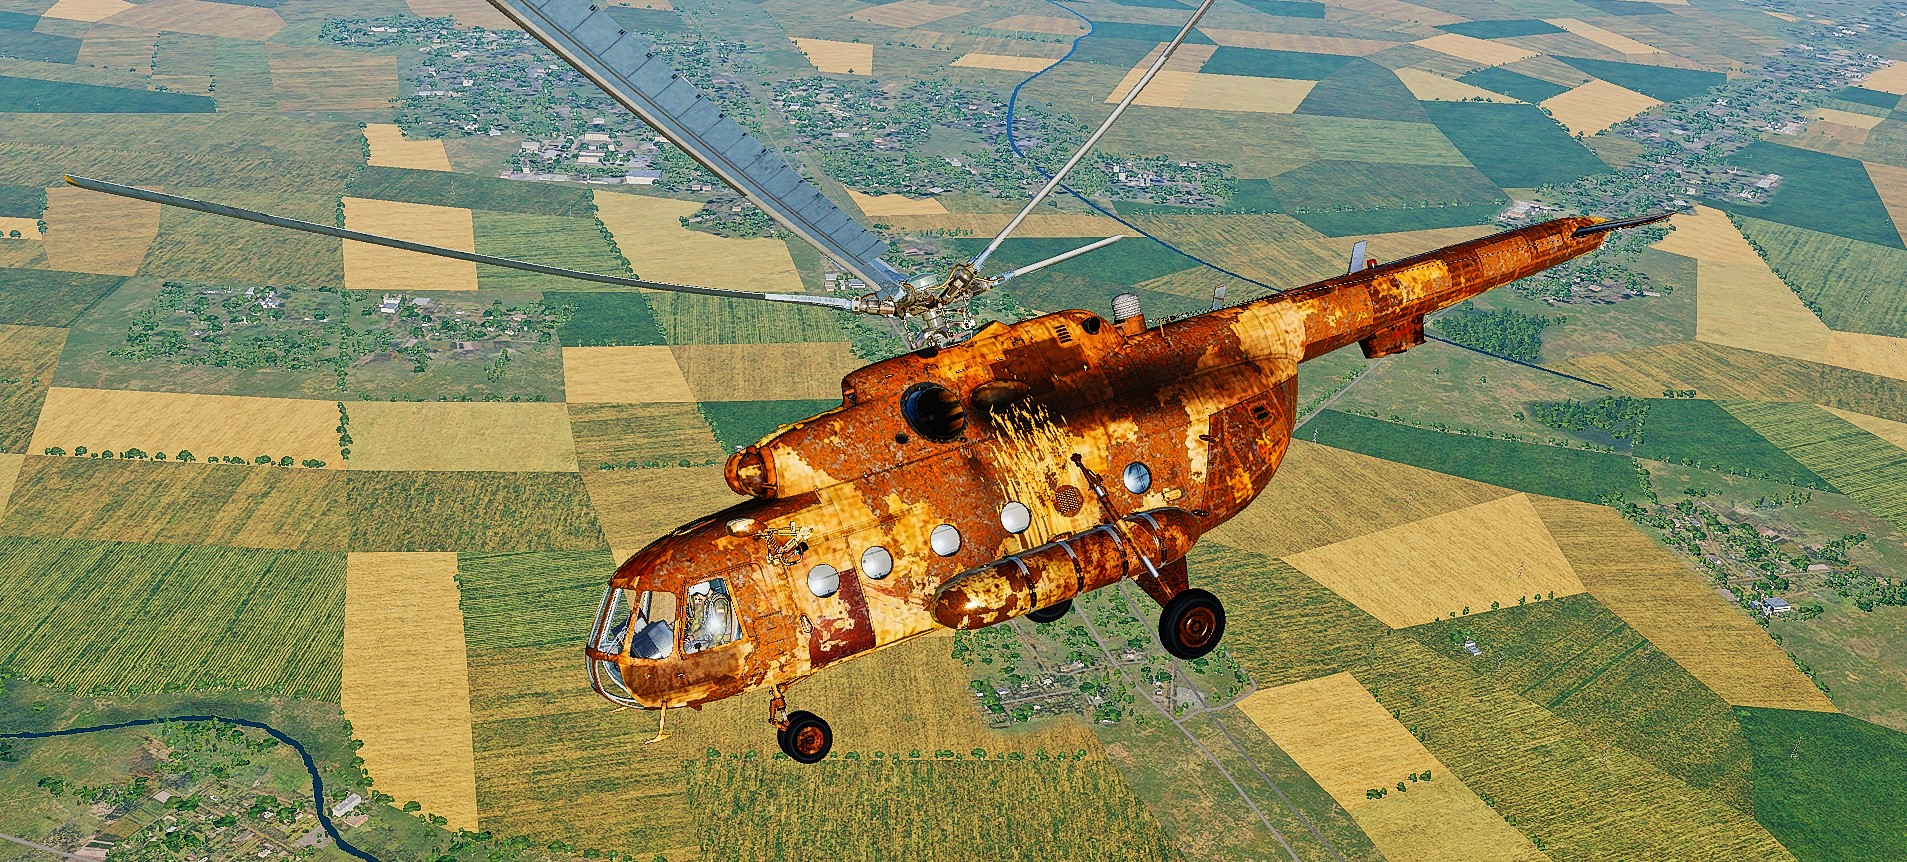 Rusty and Crusty Mi-8